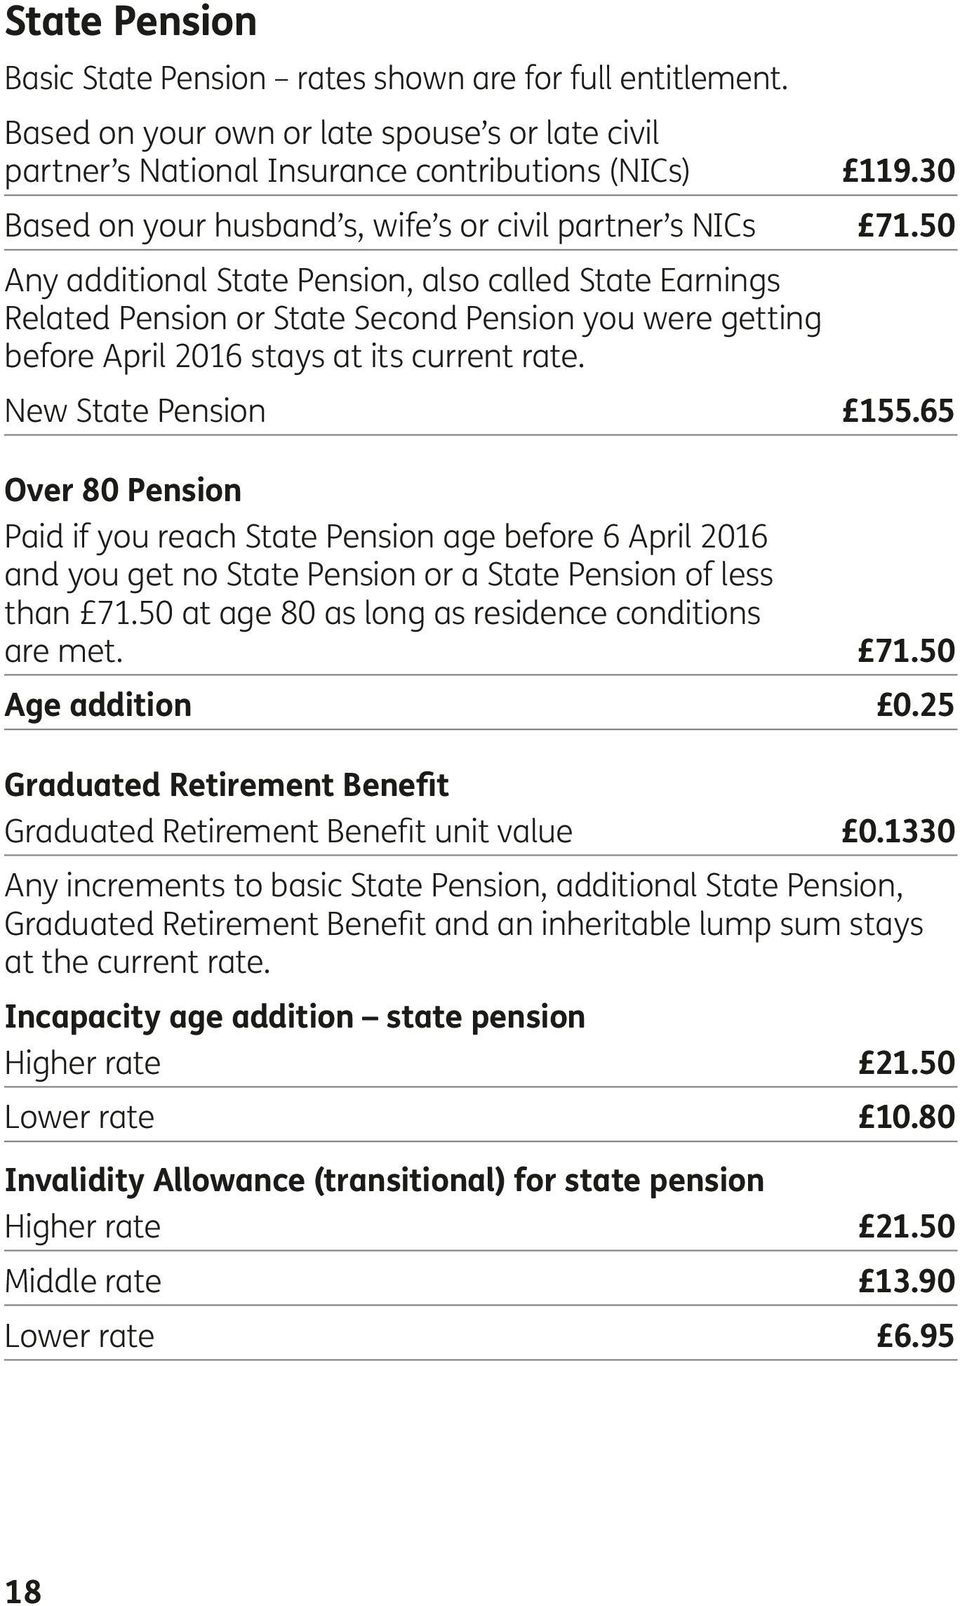 50 Any additional State Pension, also called State Earnings Related Pension or State Second Pension you were getting before April 2016 stays at its current rate. New State Pension 155.